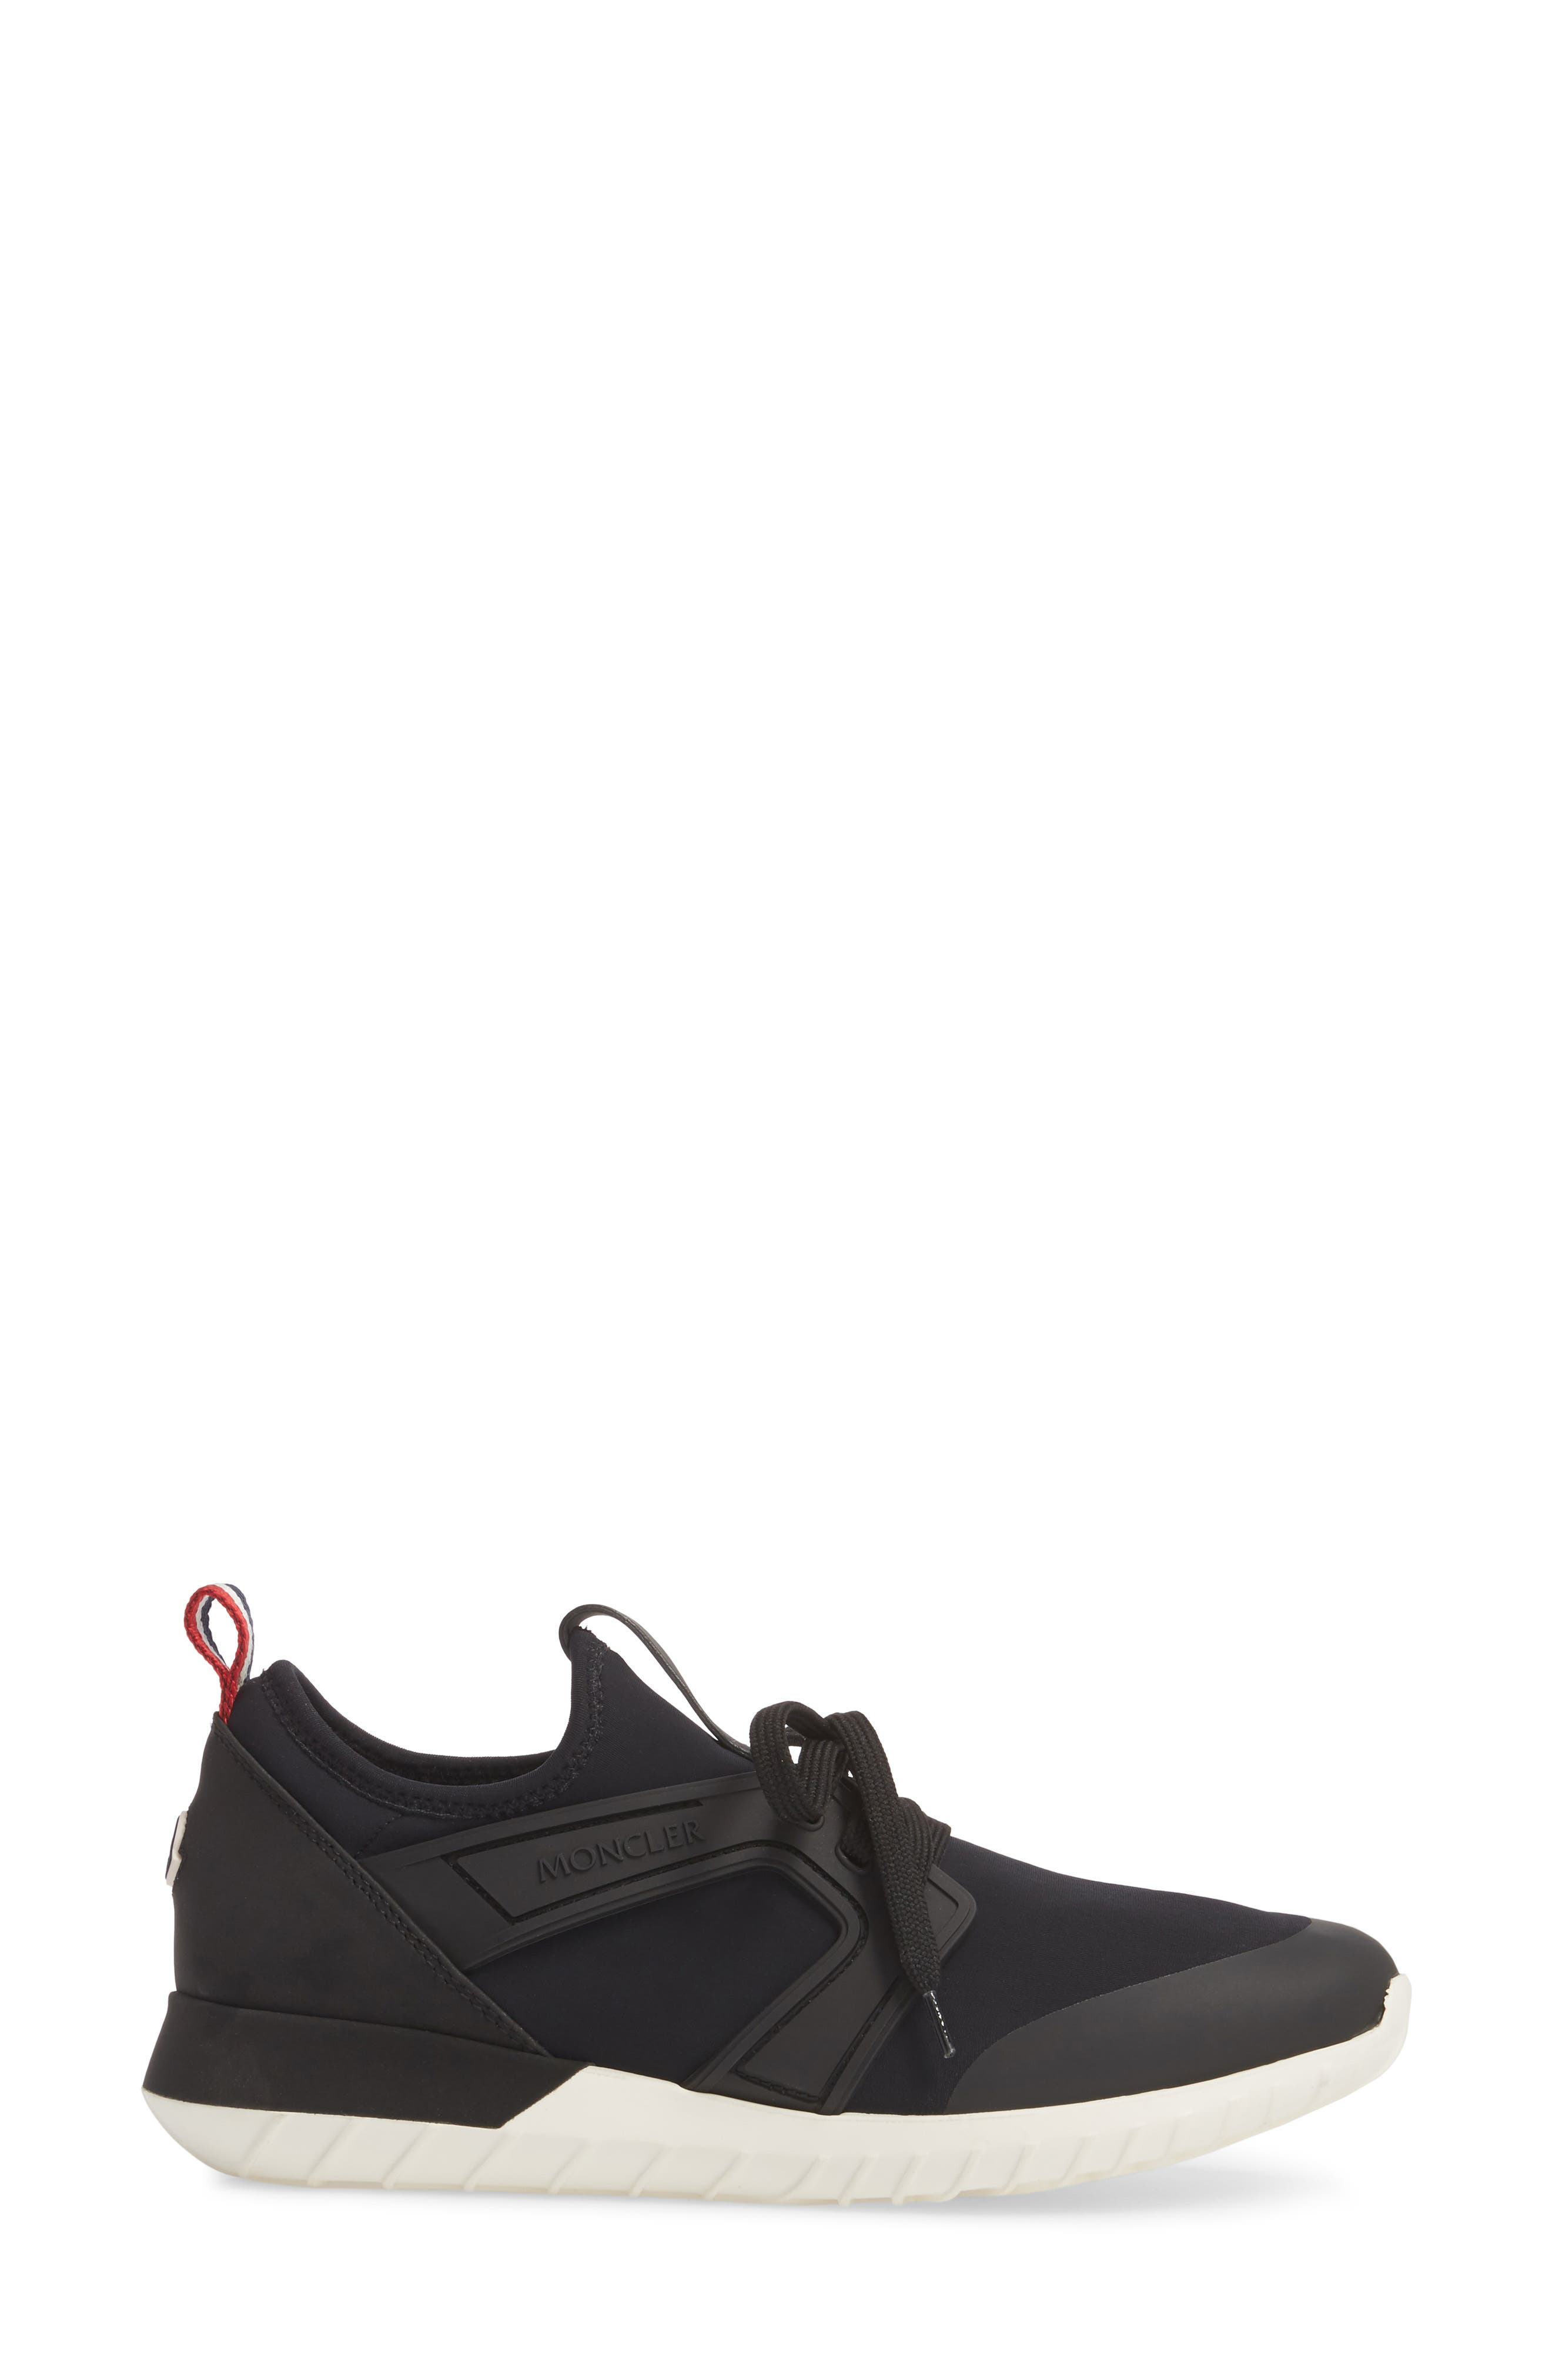 Meline Lace-Up Sneaker,                             Alternate thumbnail 3, color,                             Black